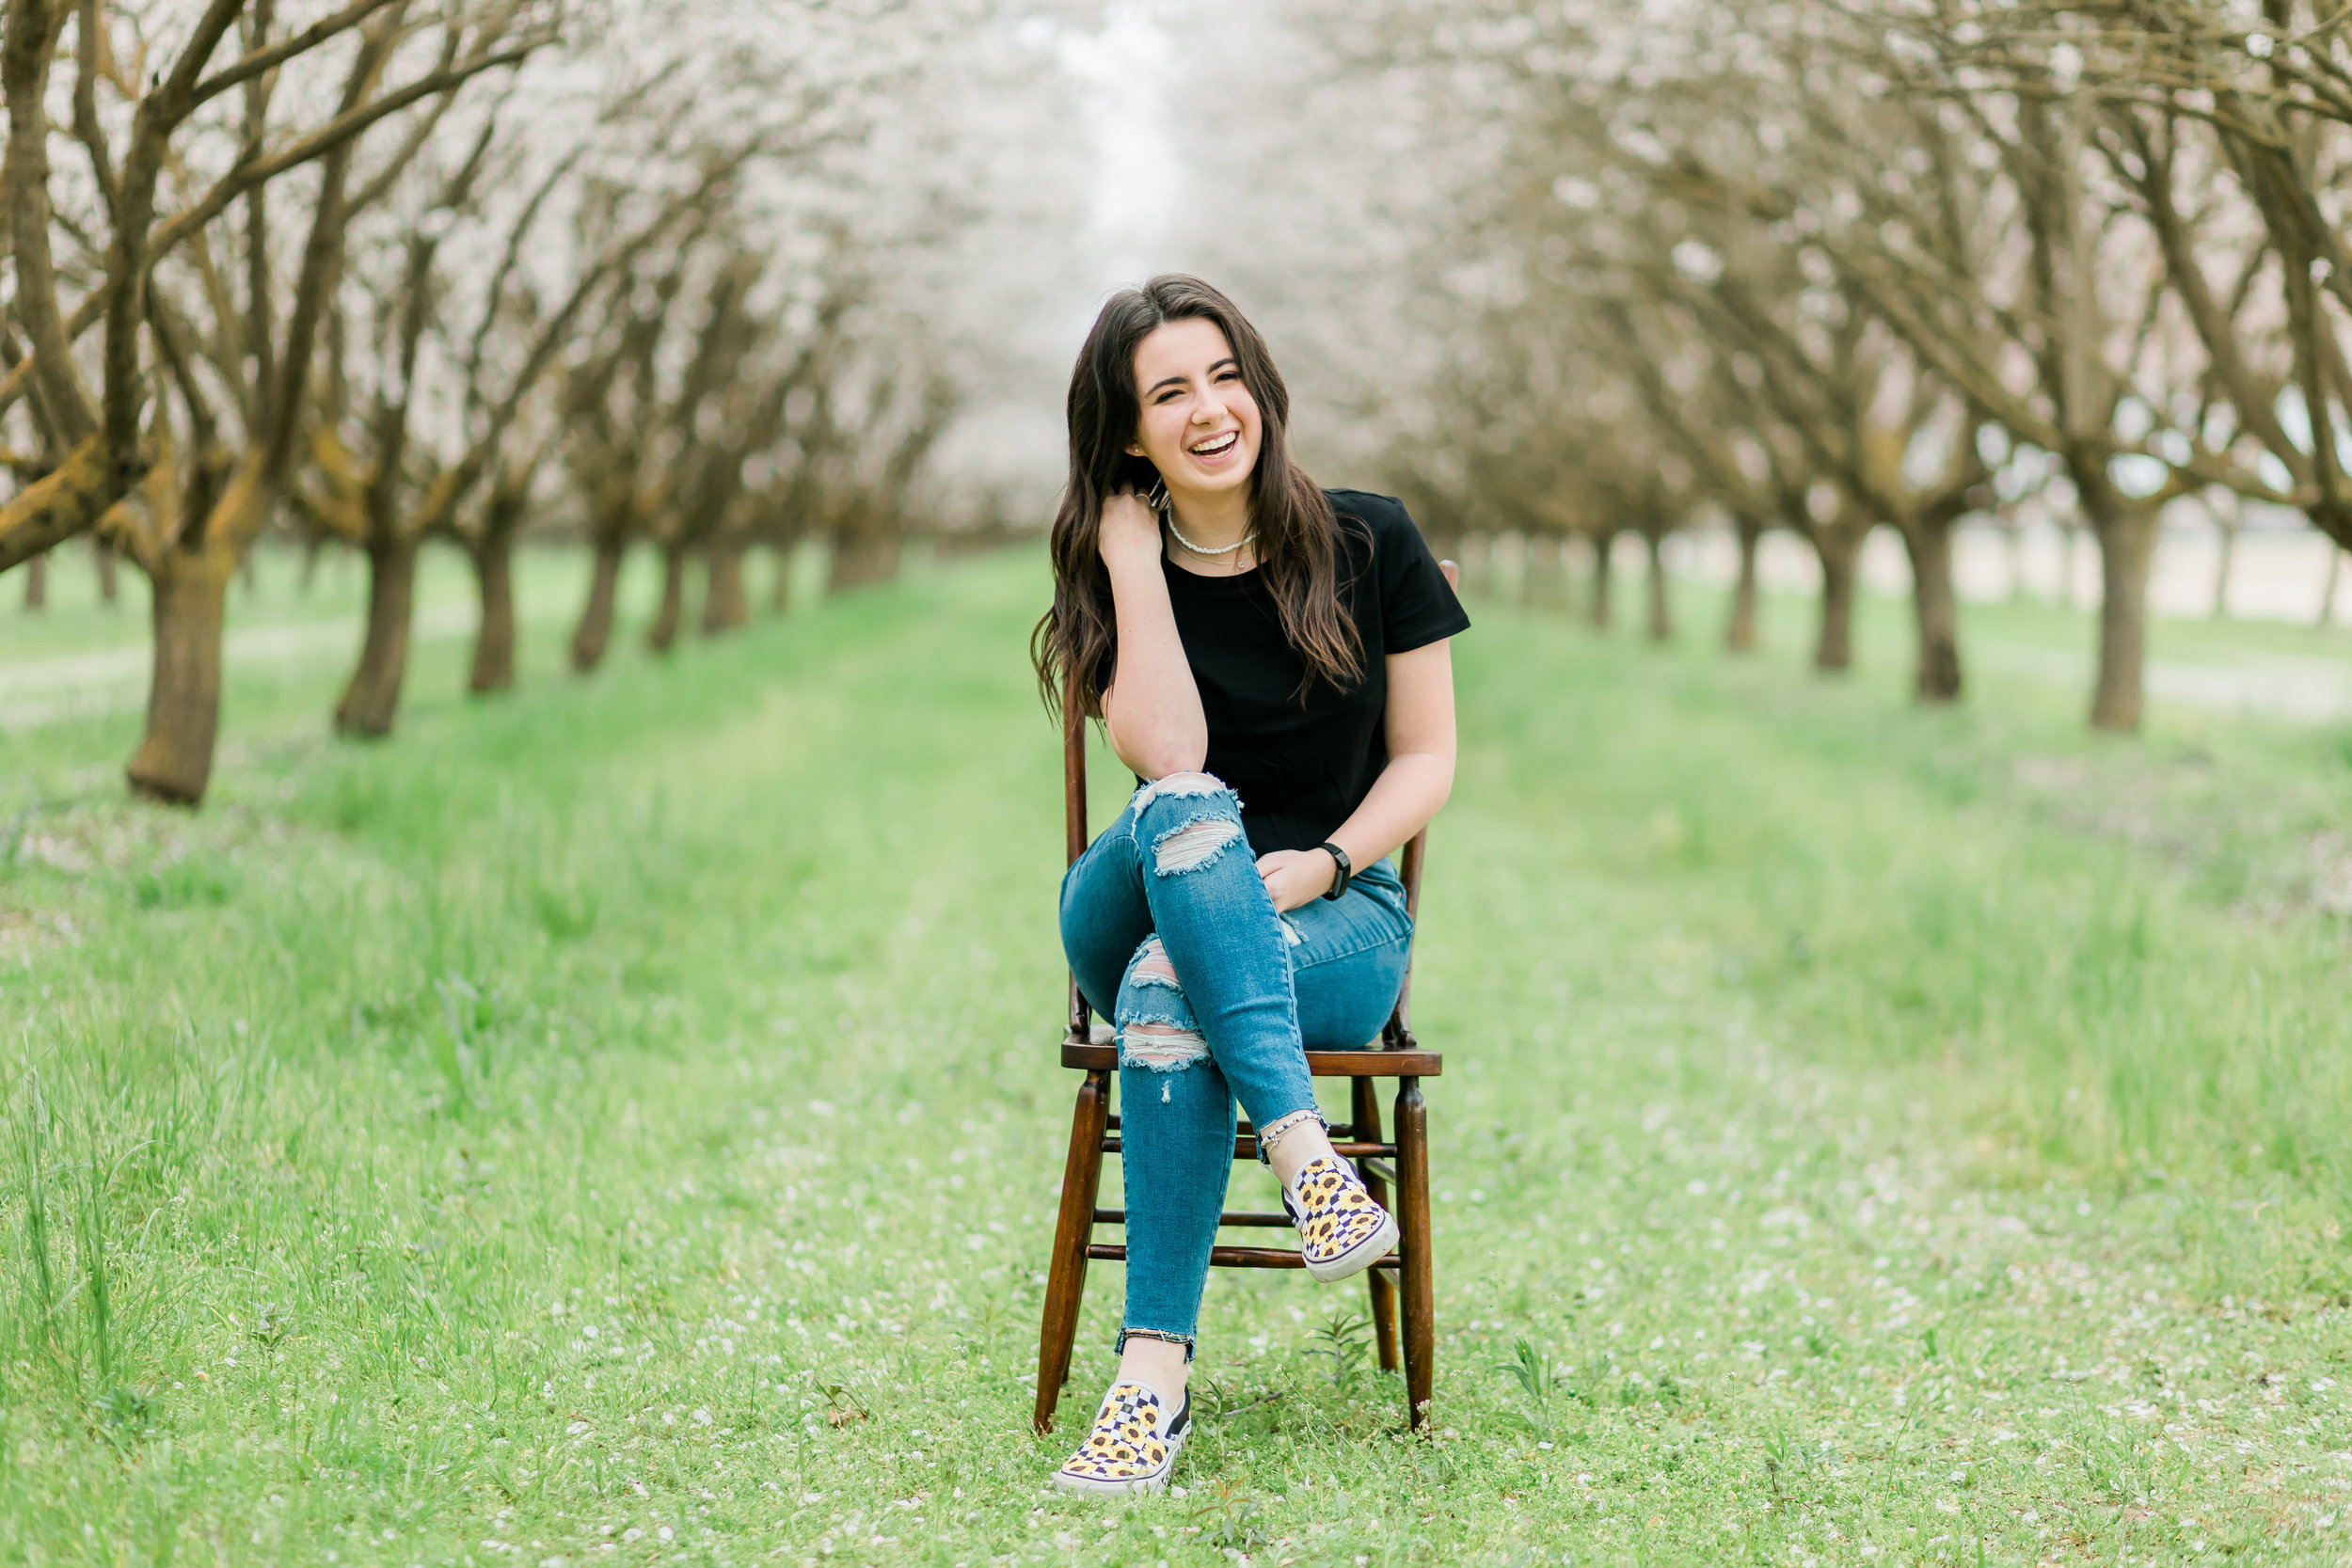 senior girl sitting on wooden chair laughing